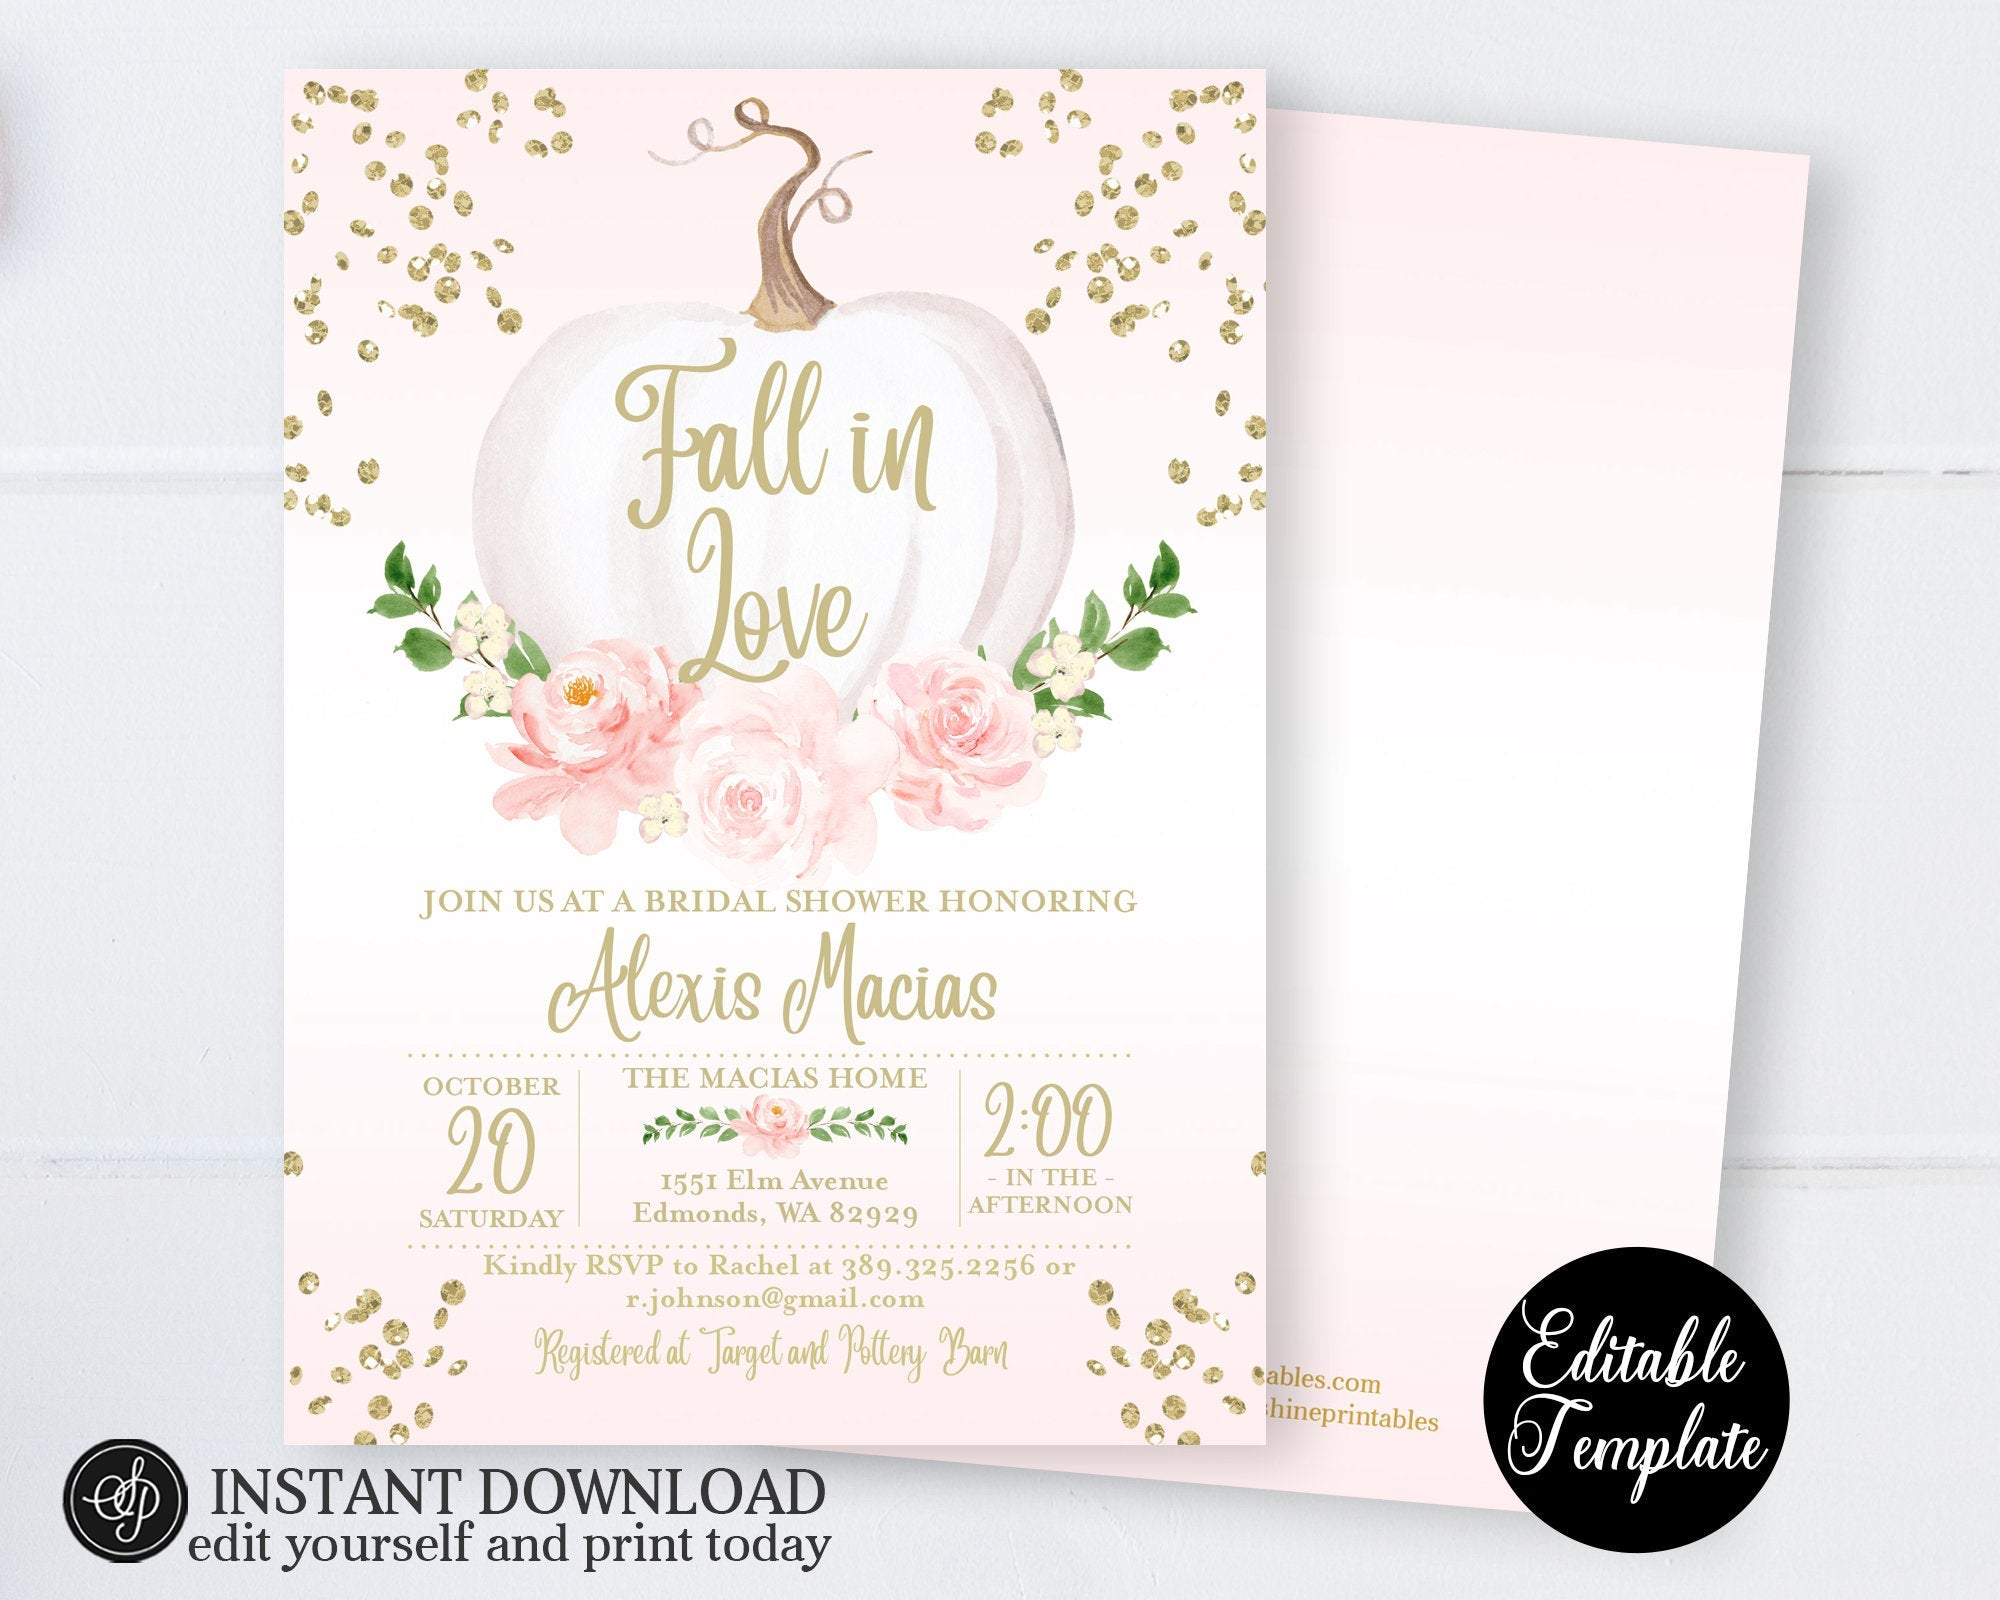 photo regarding Bridal Shower Invitations Printable identify Drop within Enjoy Bridal Shower Invitation, Red Floral White Pumpkin Bridal Shower Invite, Printable Invitation, EDITABLE, Templett, SP0056B